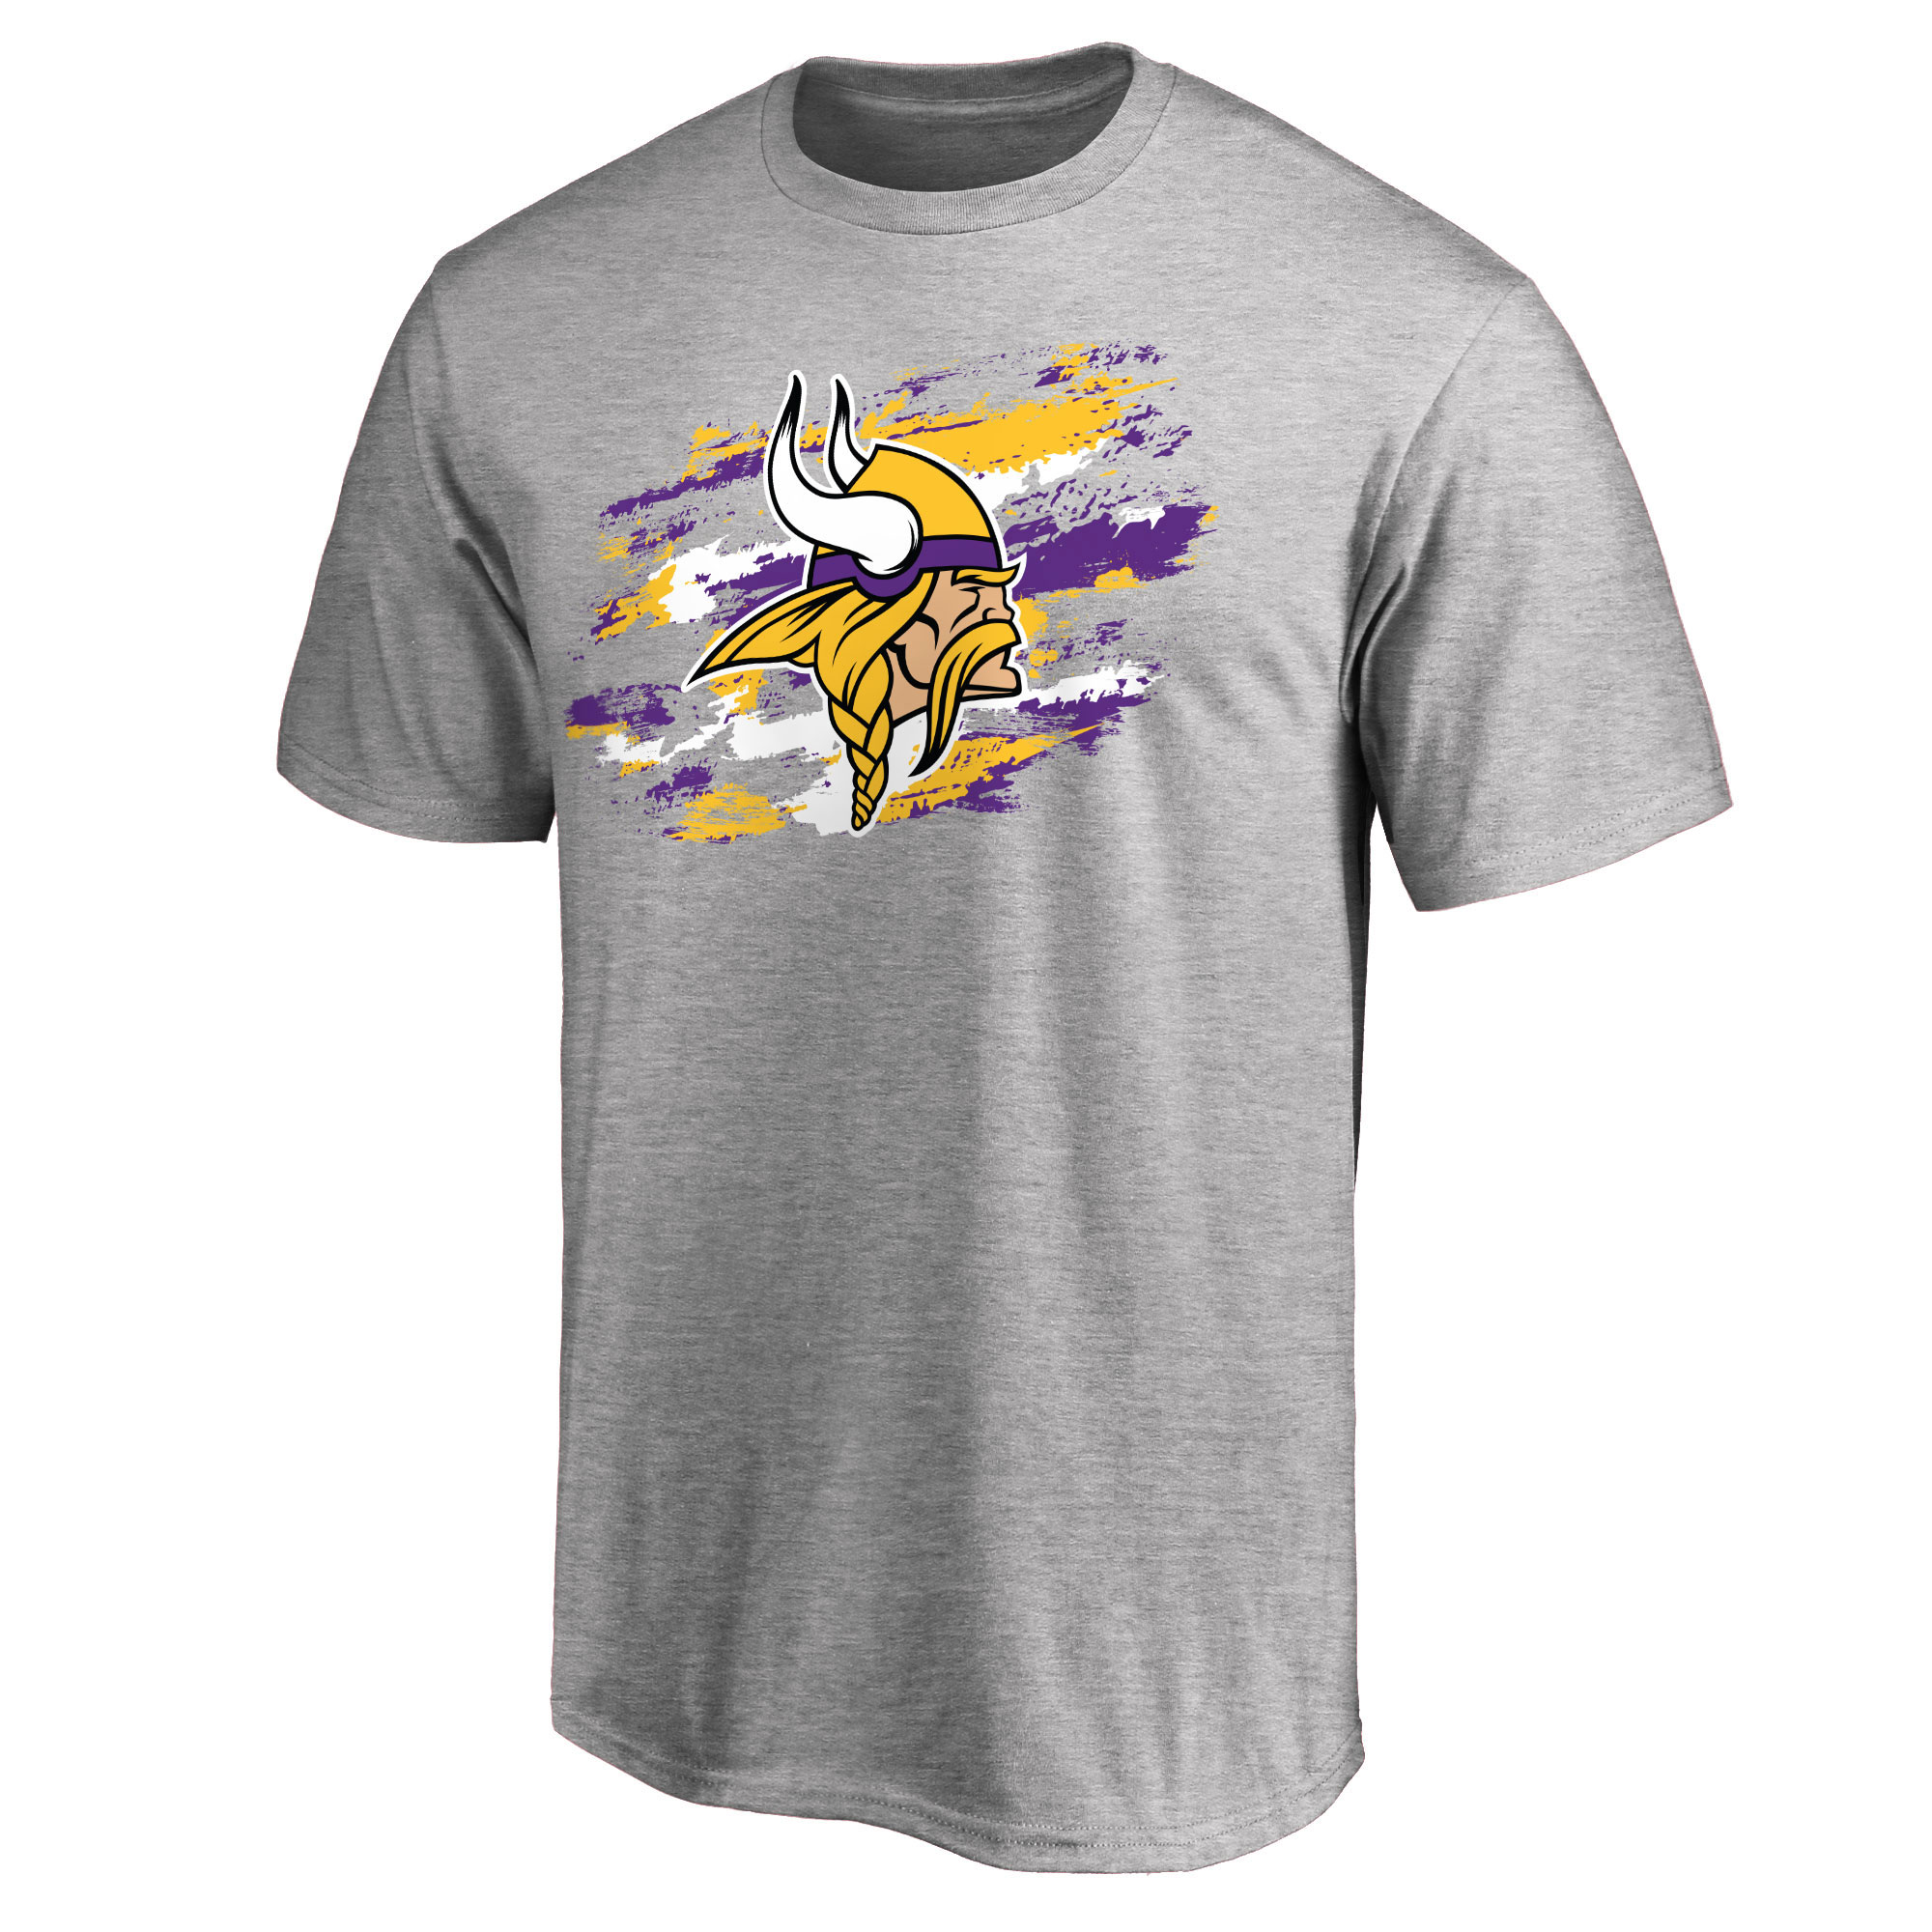 Minnesota Vikings NFL Pro Line True Color T-Shirt - Heathered Gray